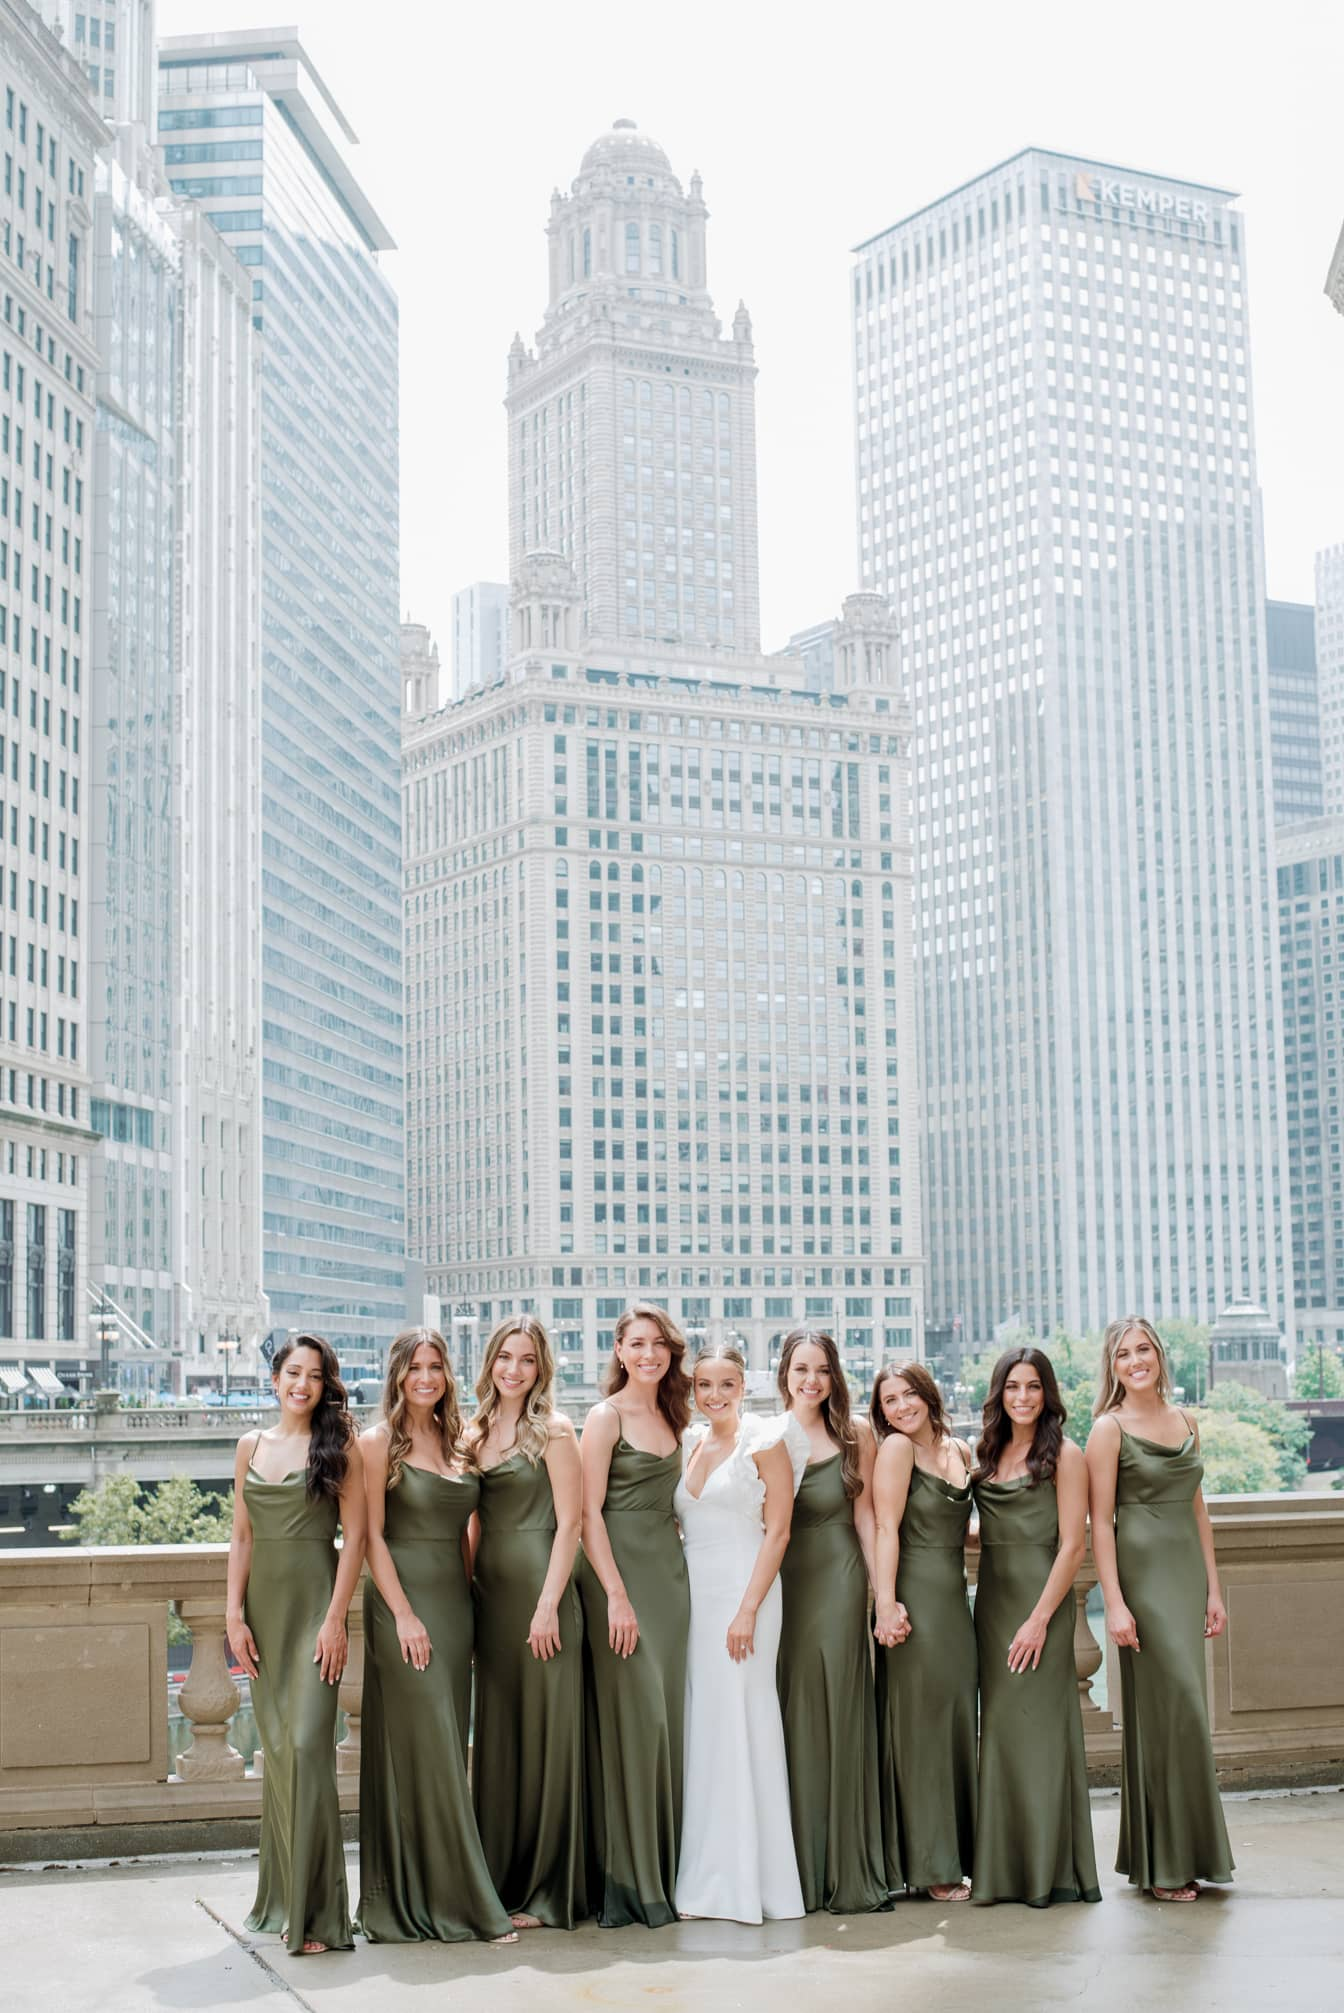 Bride and her bridesmaids at the Wrigley Building in Chicago